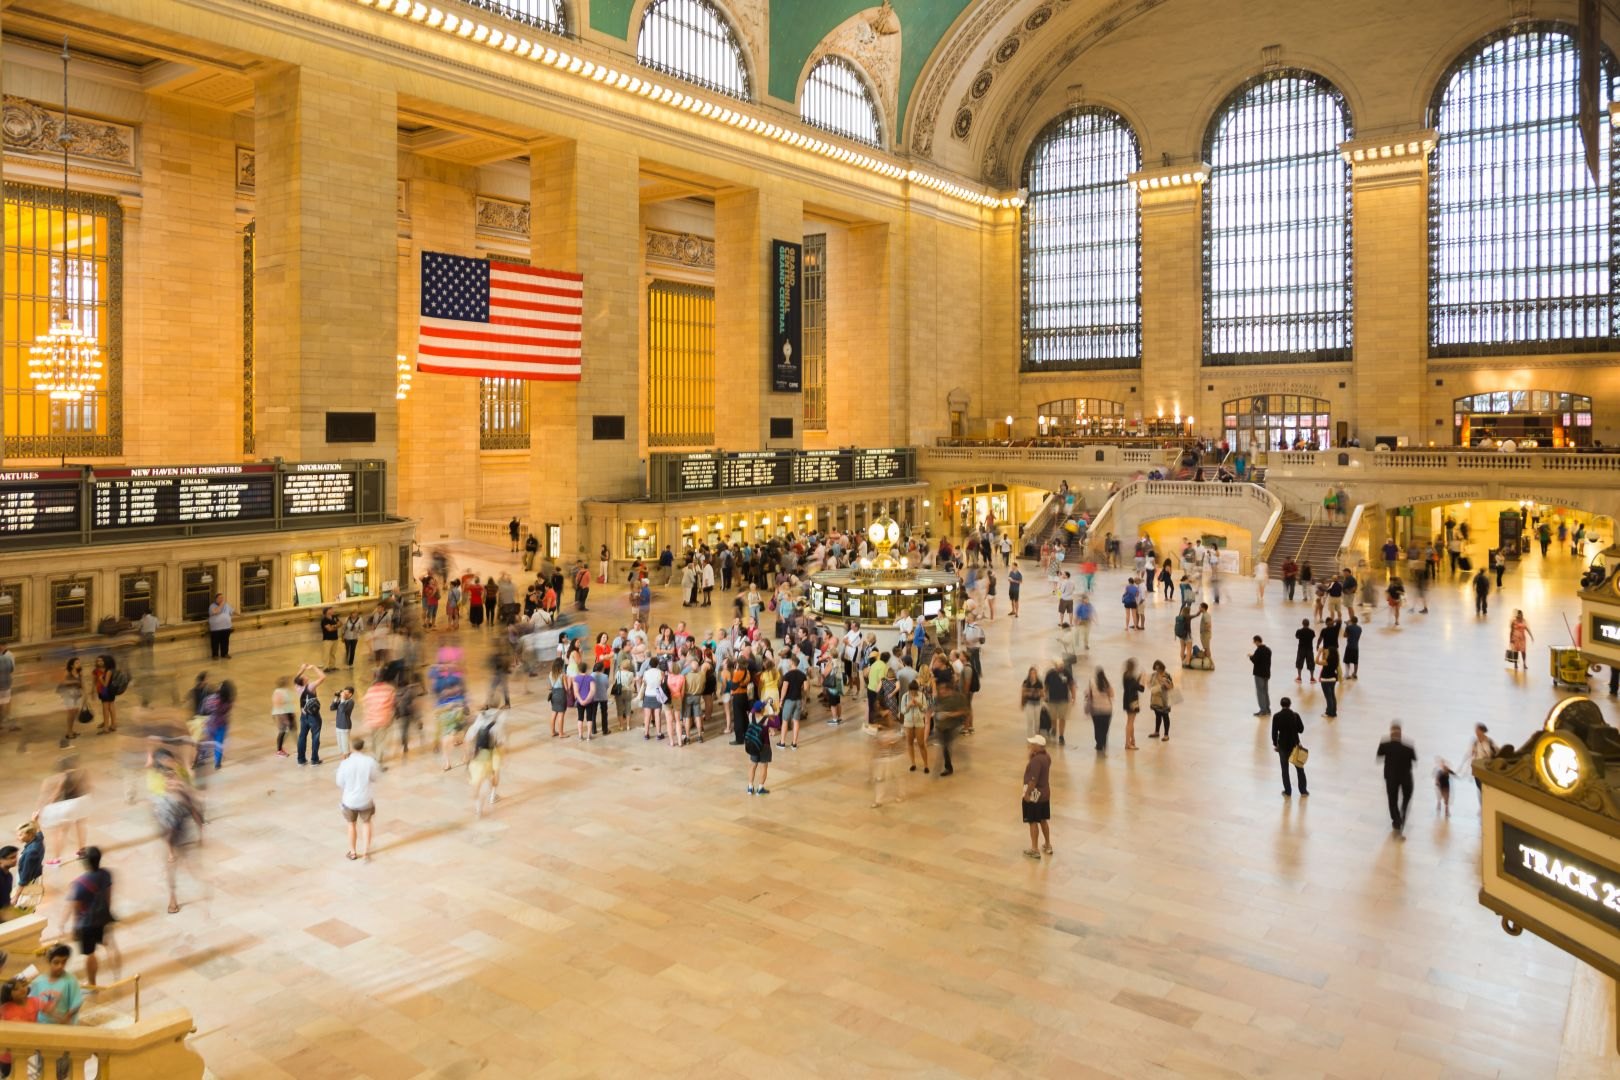 A photo of New York City Grand Central Station